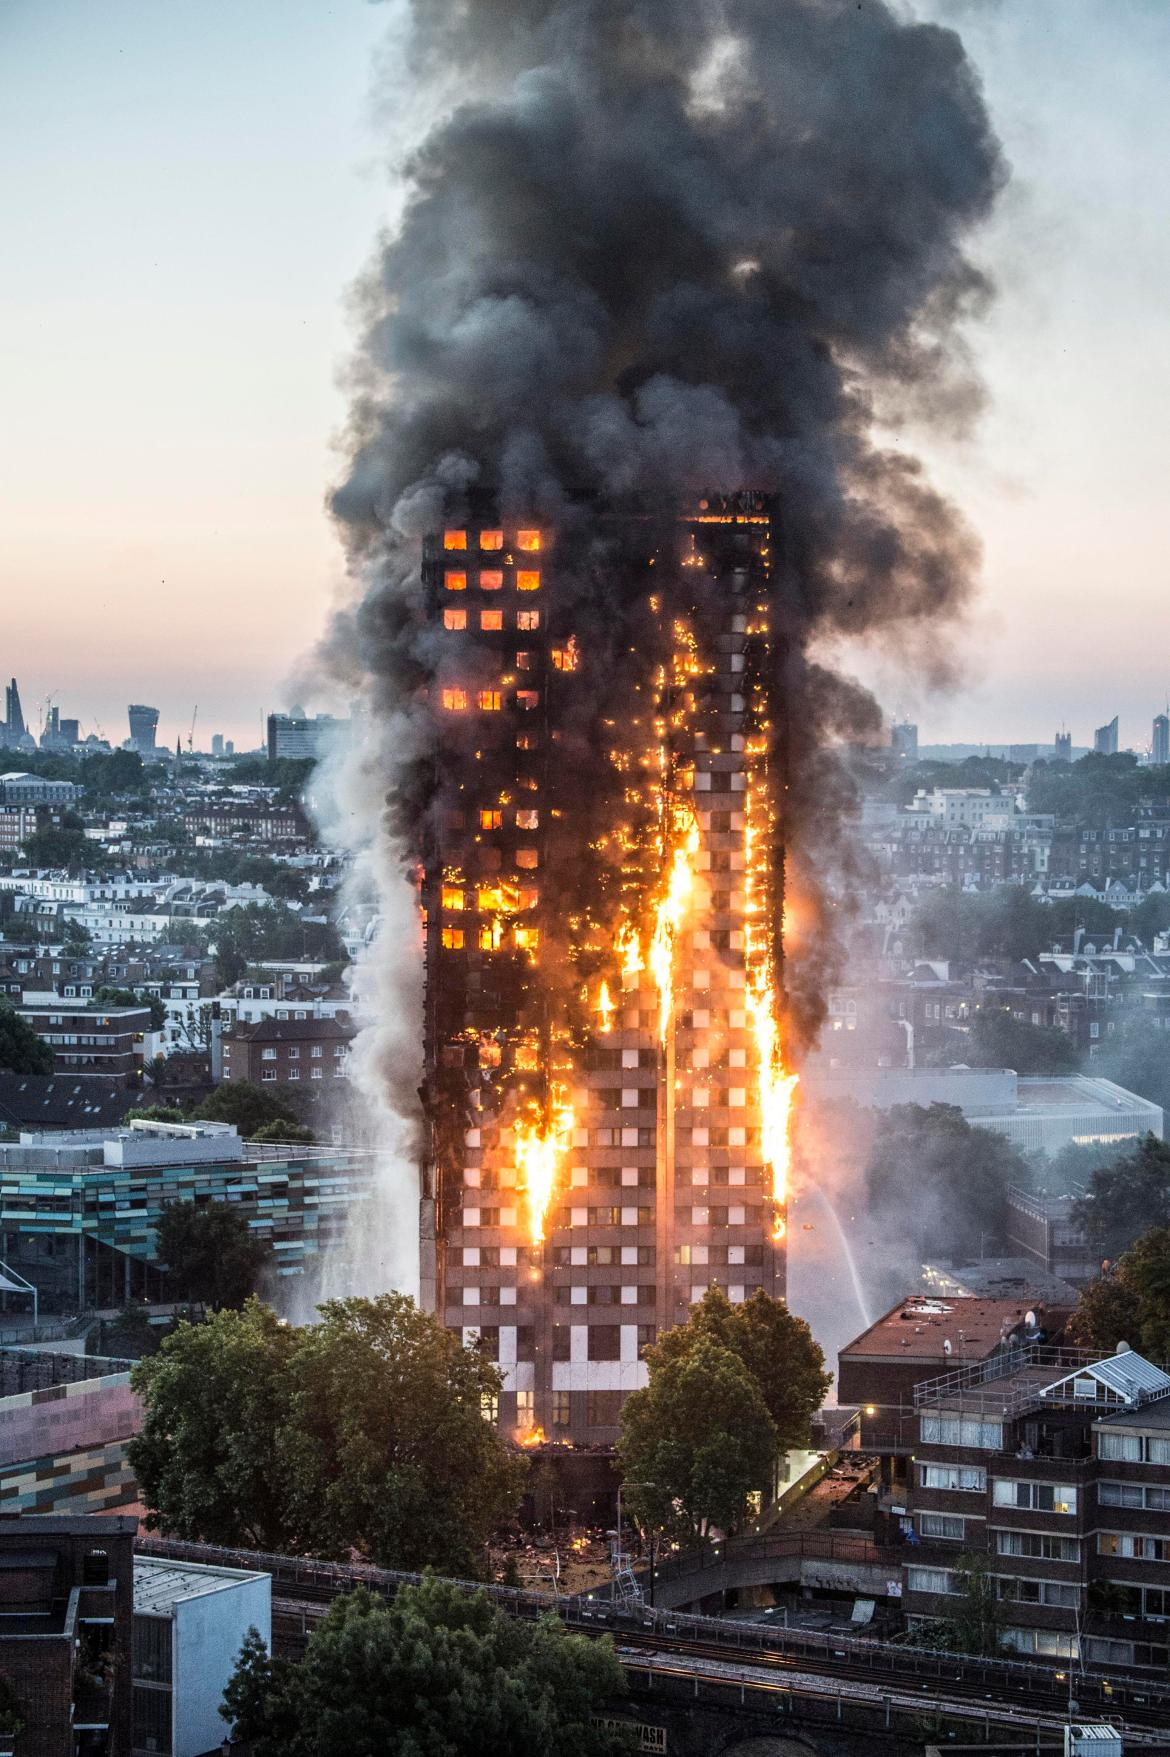 Young soldiers living in run-down accommodation are said to be at risk of a Grenfell Tower-like catastrophe